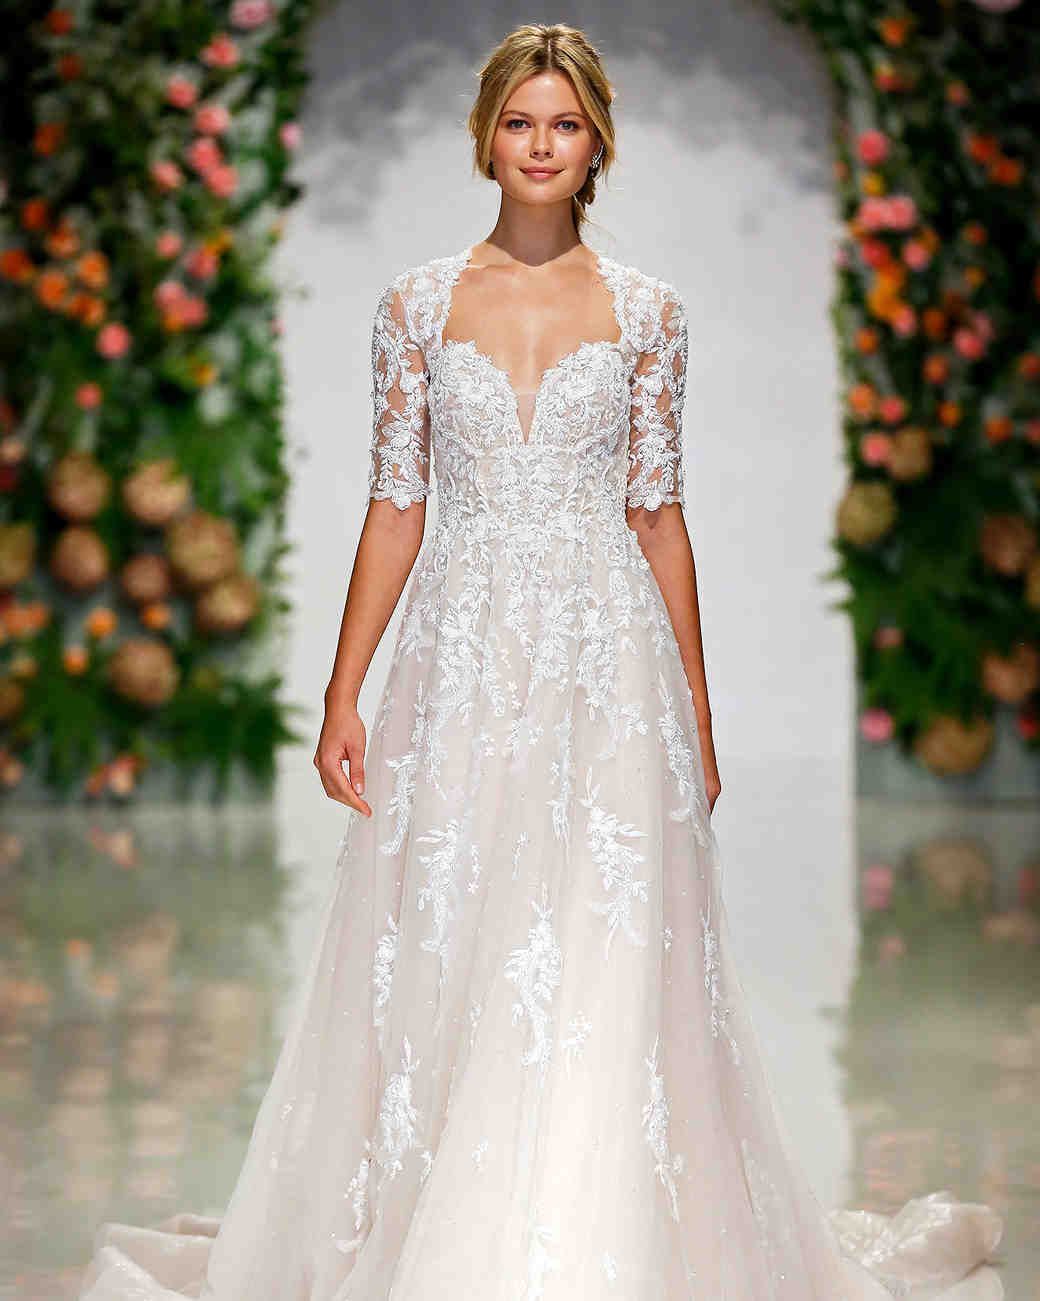 Morilee by Madeline Gardner Fall 2019 Wedding Dress Collection ...